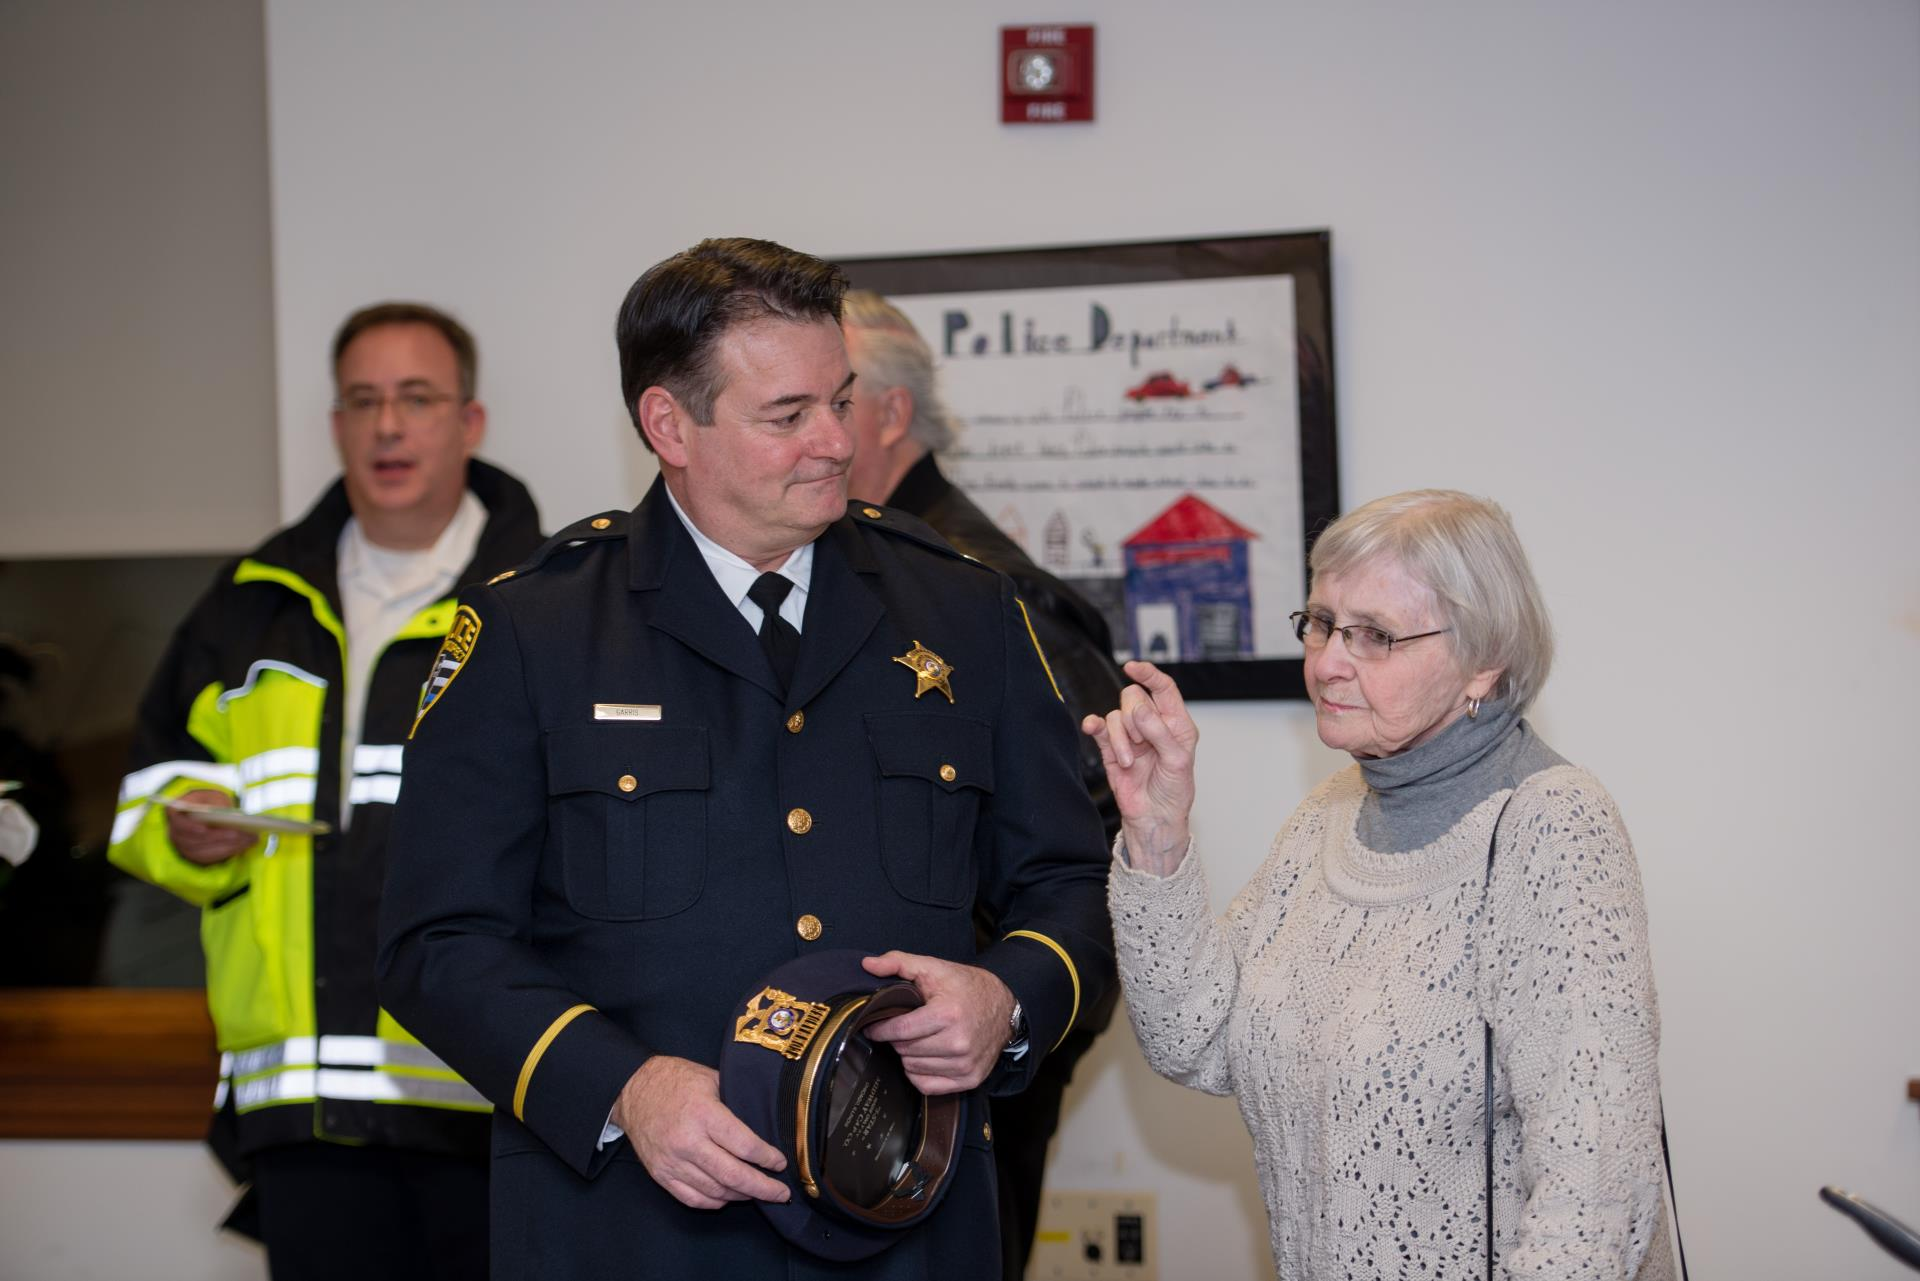 Chief Koziol Swearing-In Ceremony Final-7736